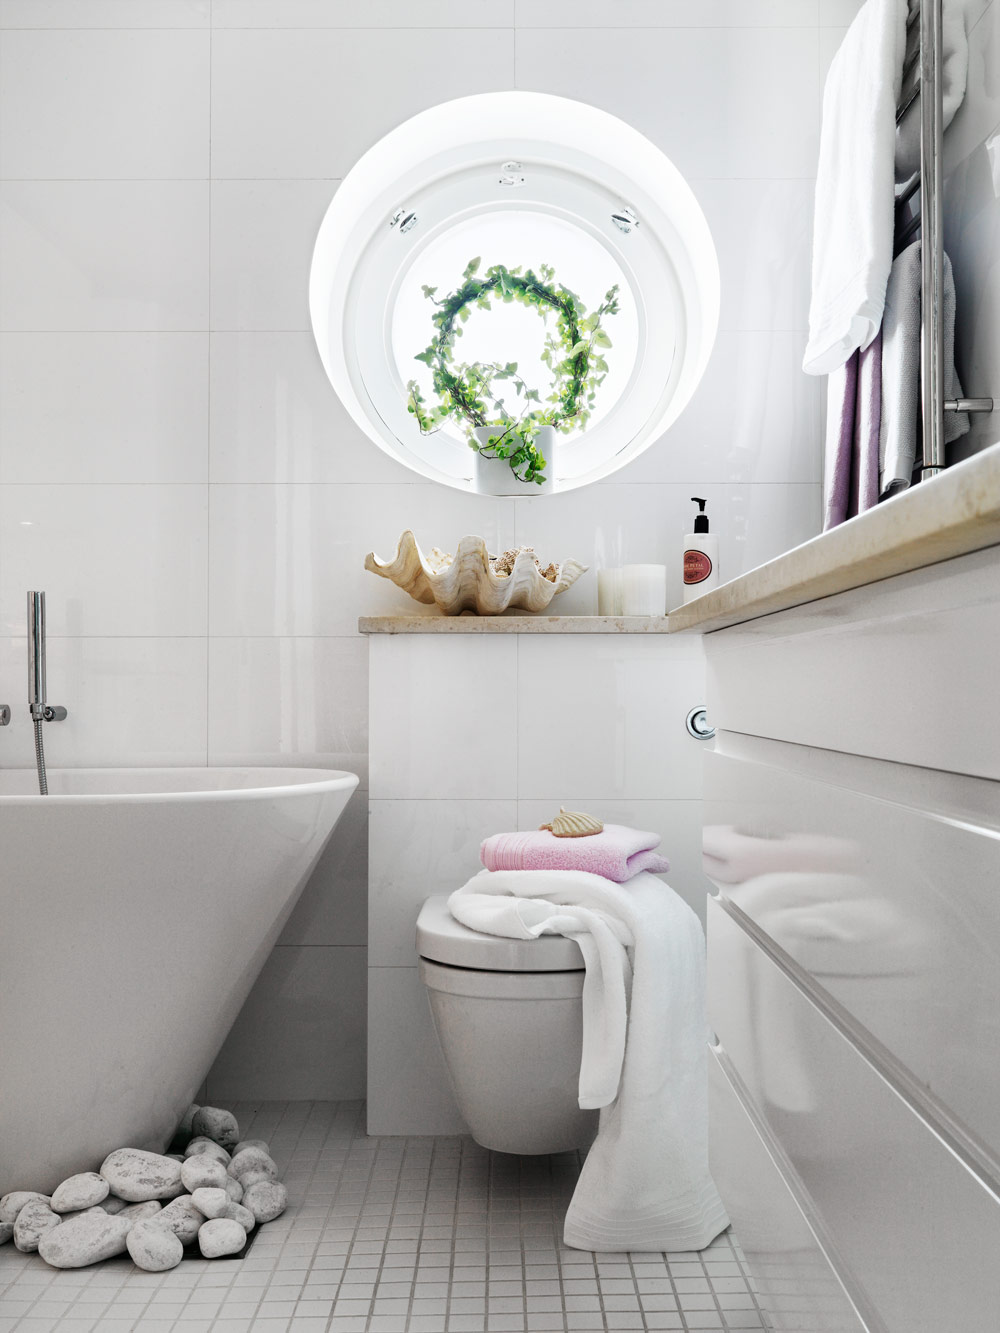 Stylish small bathroom with an unusual decor digsdigs for Decorated bathrooms photos